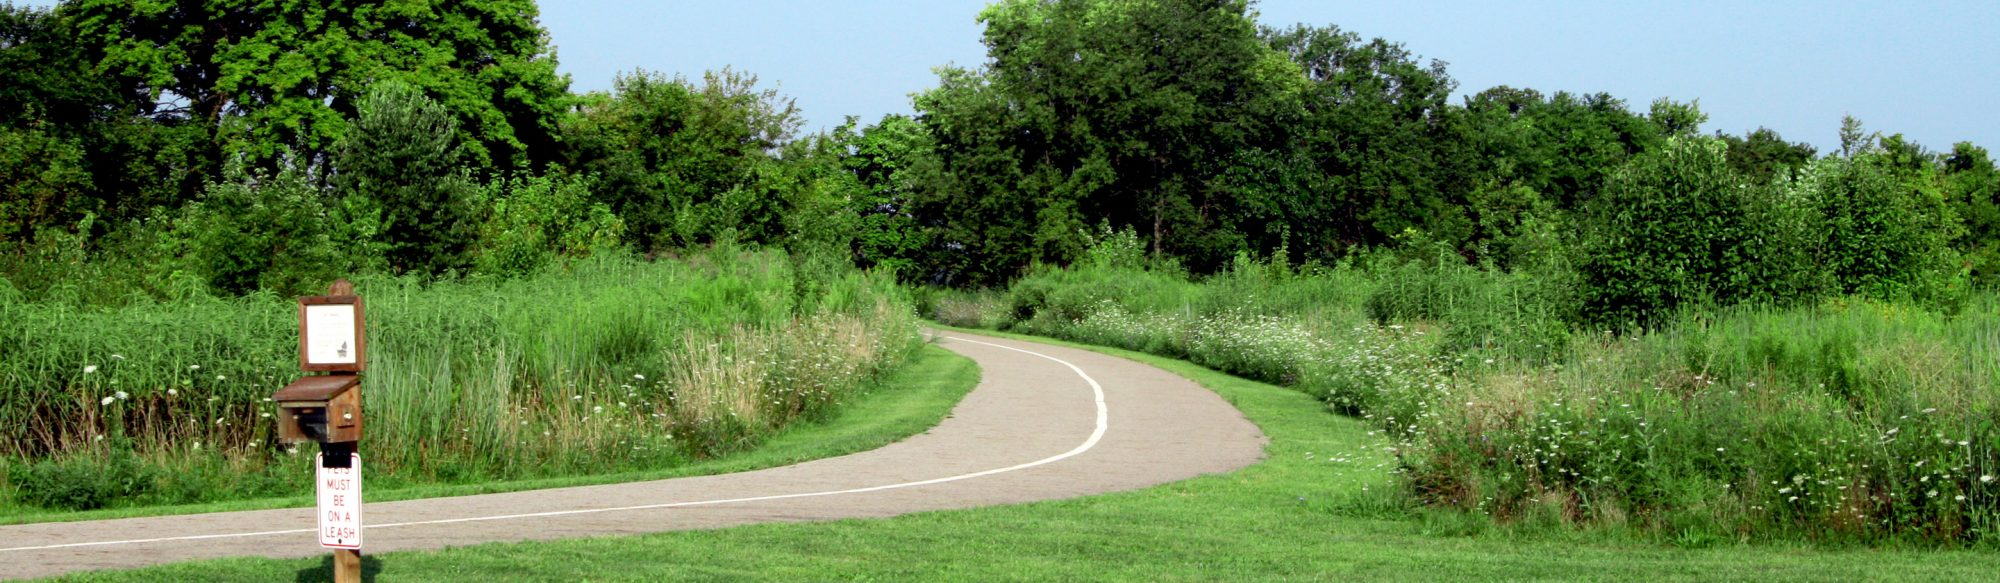 Clean Ohio Fund Green Space Conservation